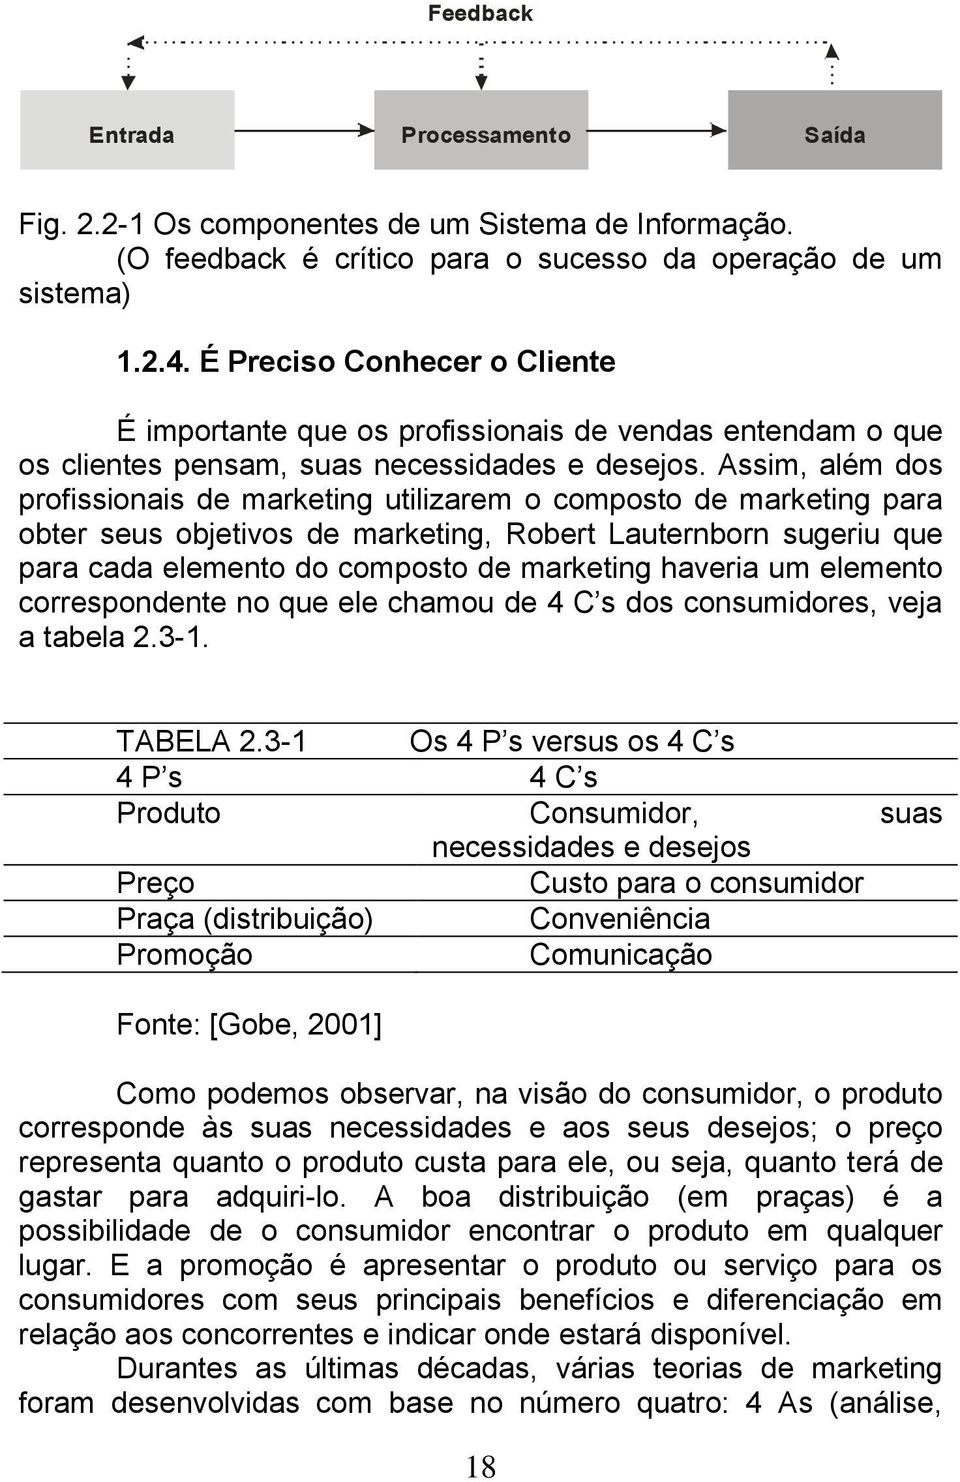 Assim, além dos profissionais de marketing utilizarem o composto de marketing para obter seus objetivos de marketing, Robert Lauternborn sugeriu que para cada elemento do composto de marketing